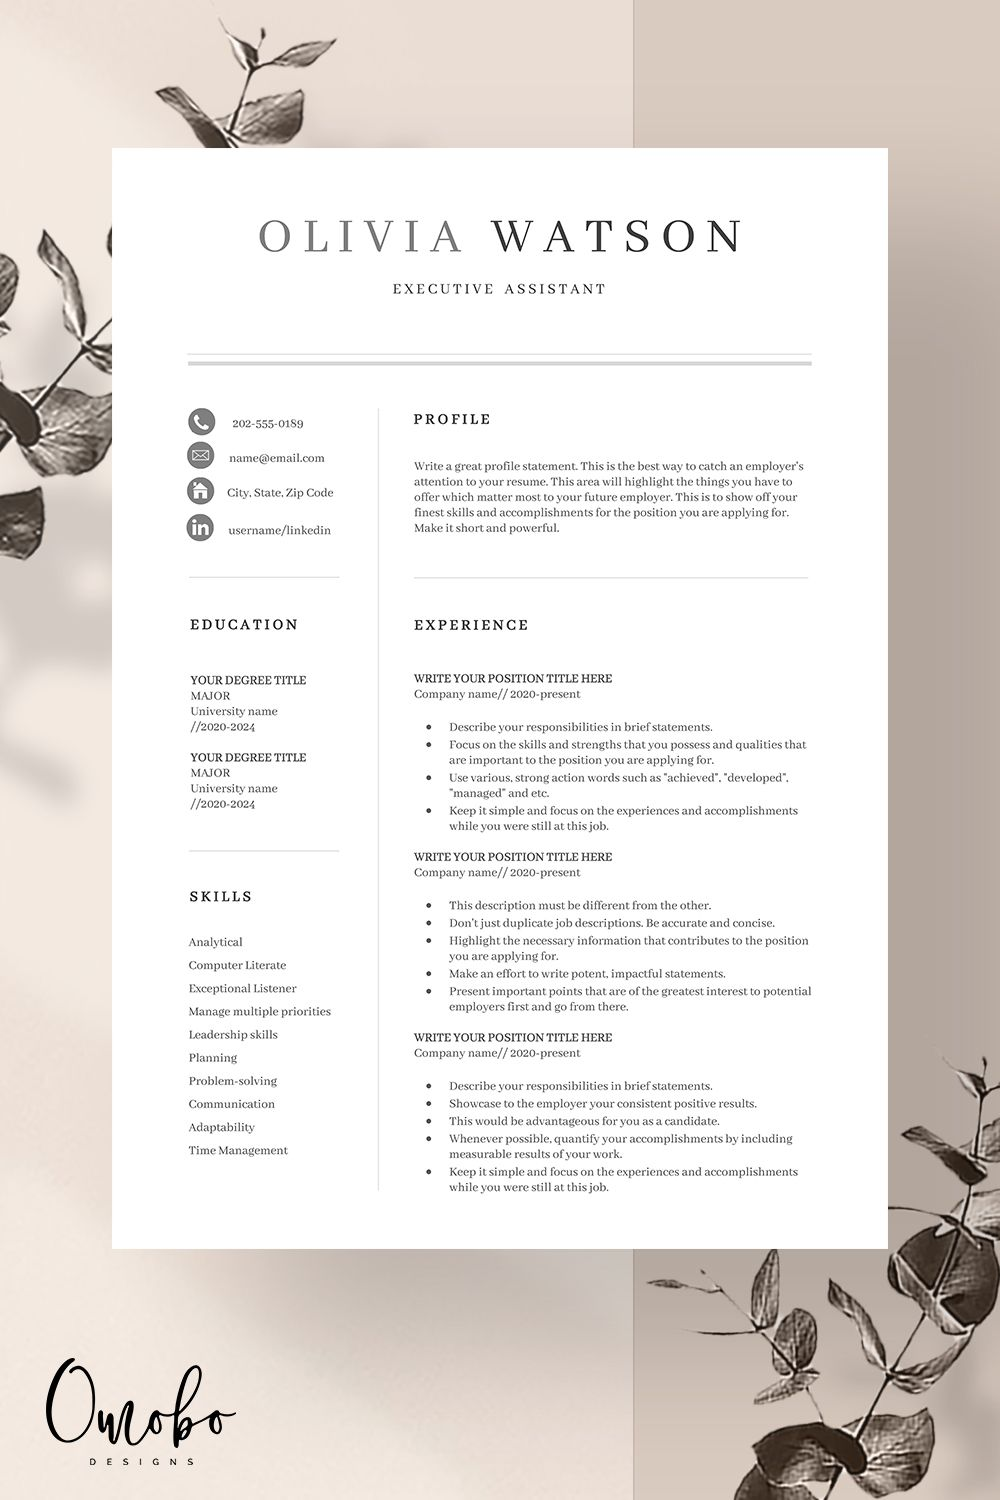 Resume Template Professional Resume Template Resume Templates Curriculum Vitae Resume Cv Functional Template Ms Word Cv Template Oli In 2020 Resume Template Professional Resume Templates Resume Template